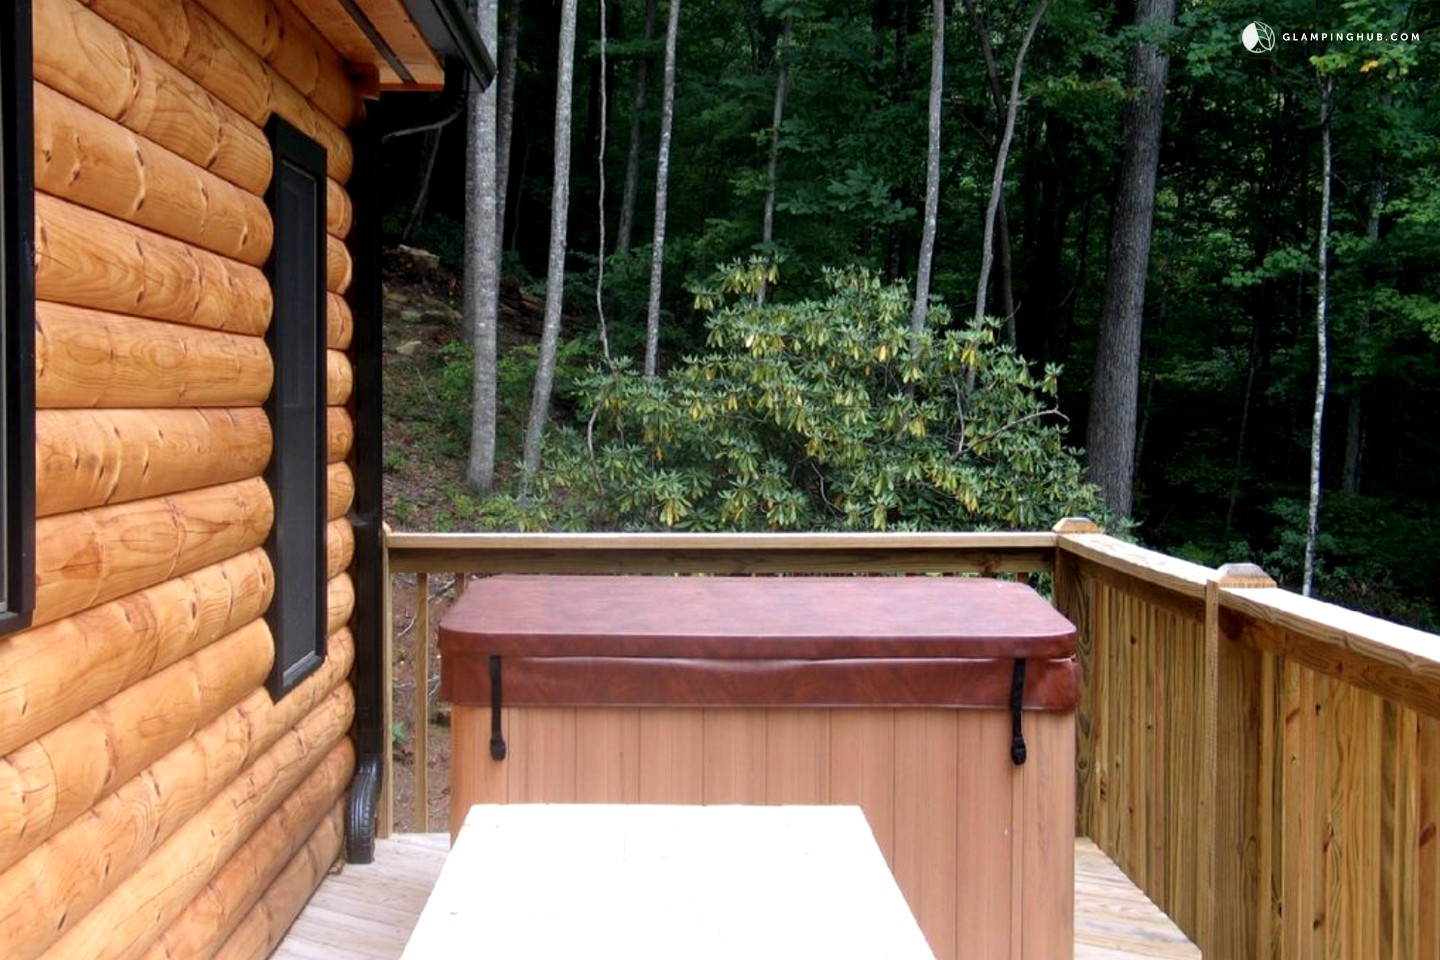 Vacation cabin rental near hendersonville north carolina for Cabins near hendersonville nc